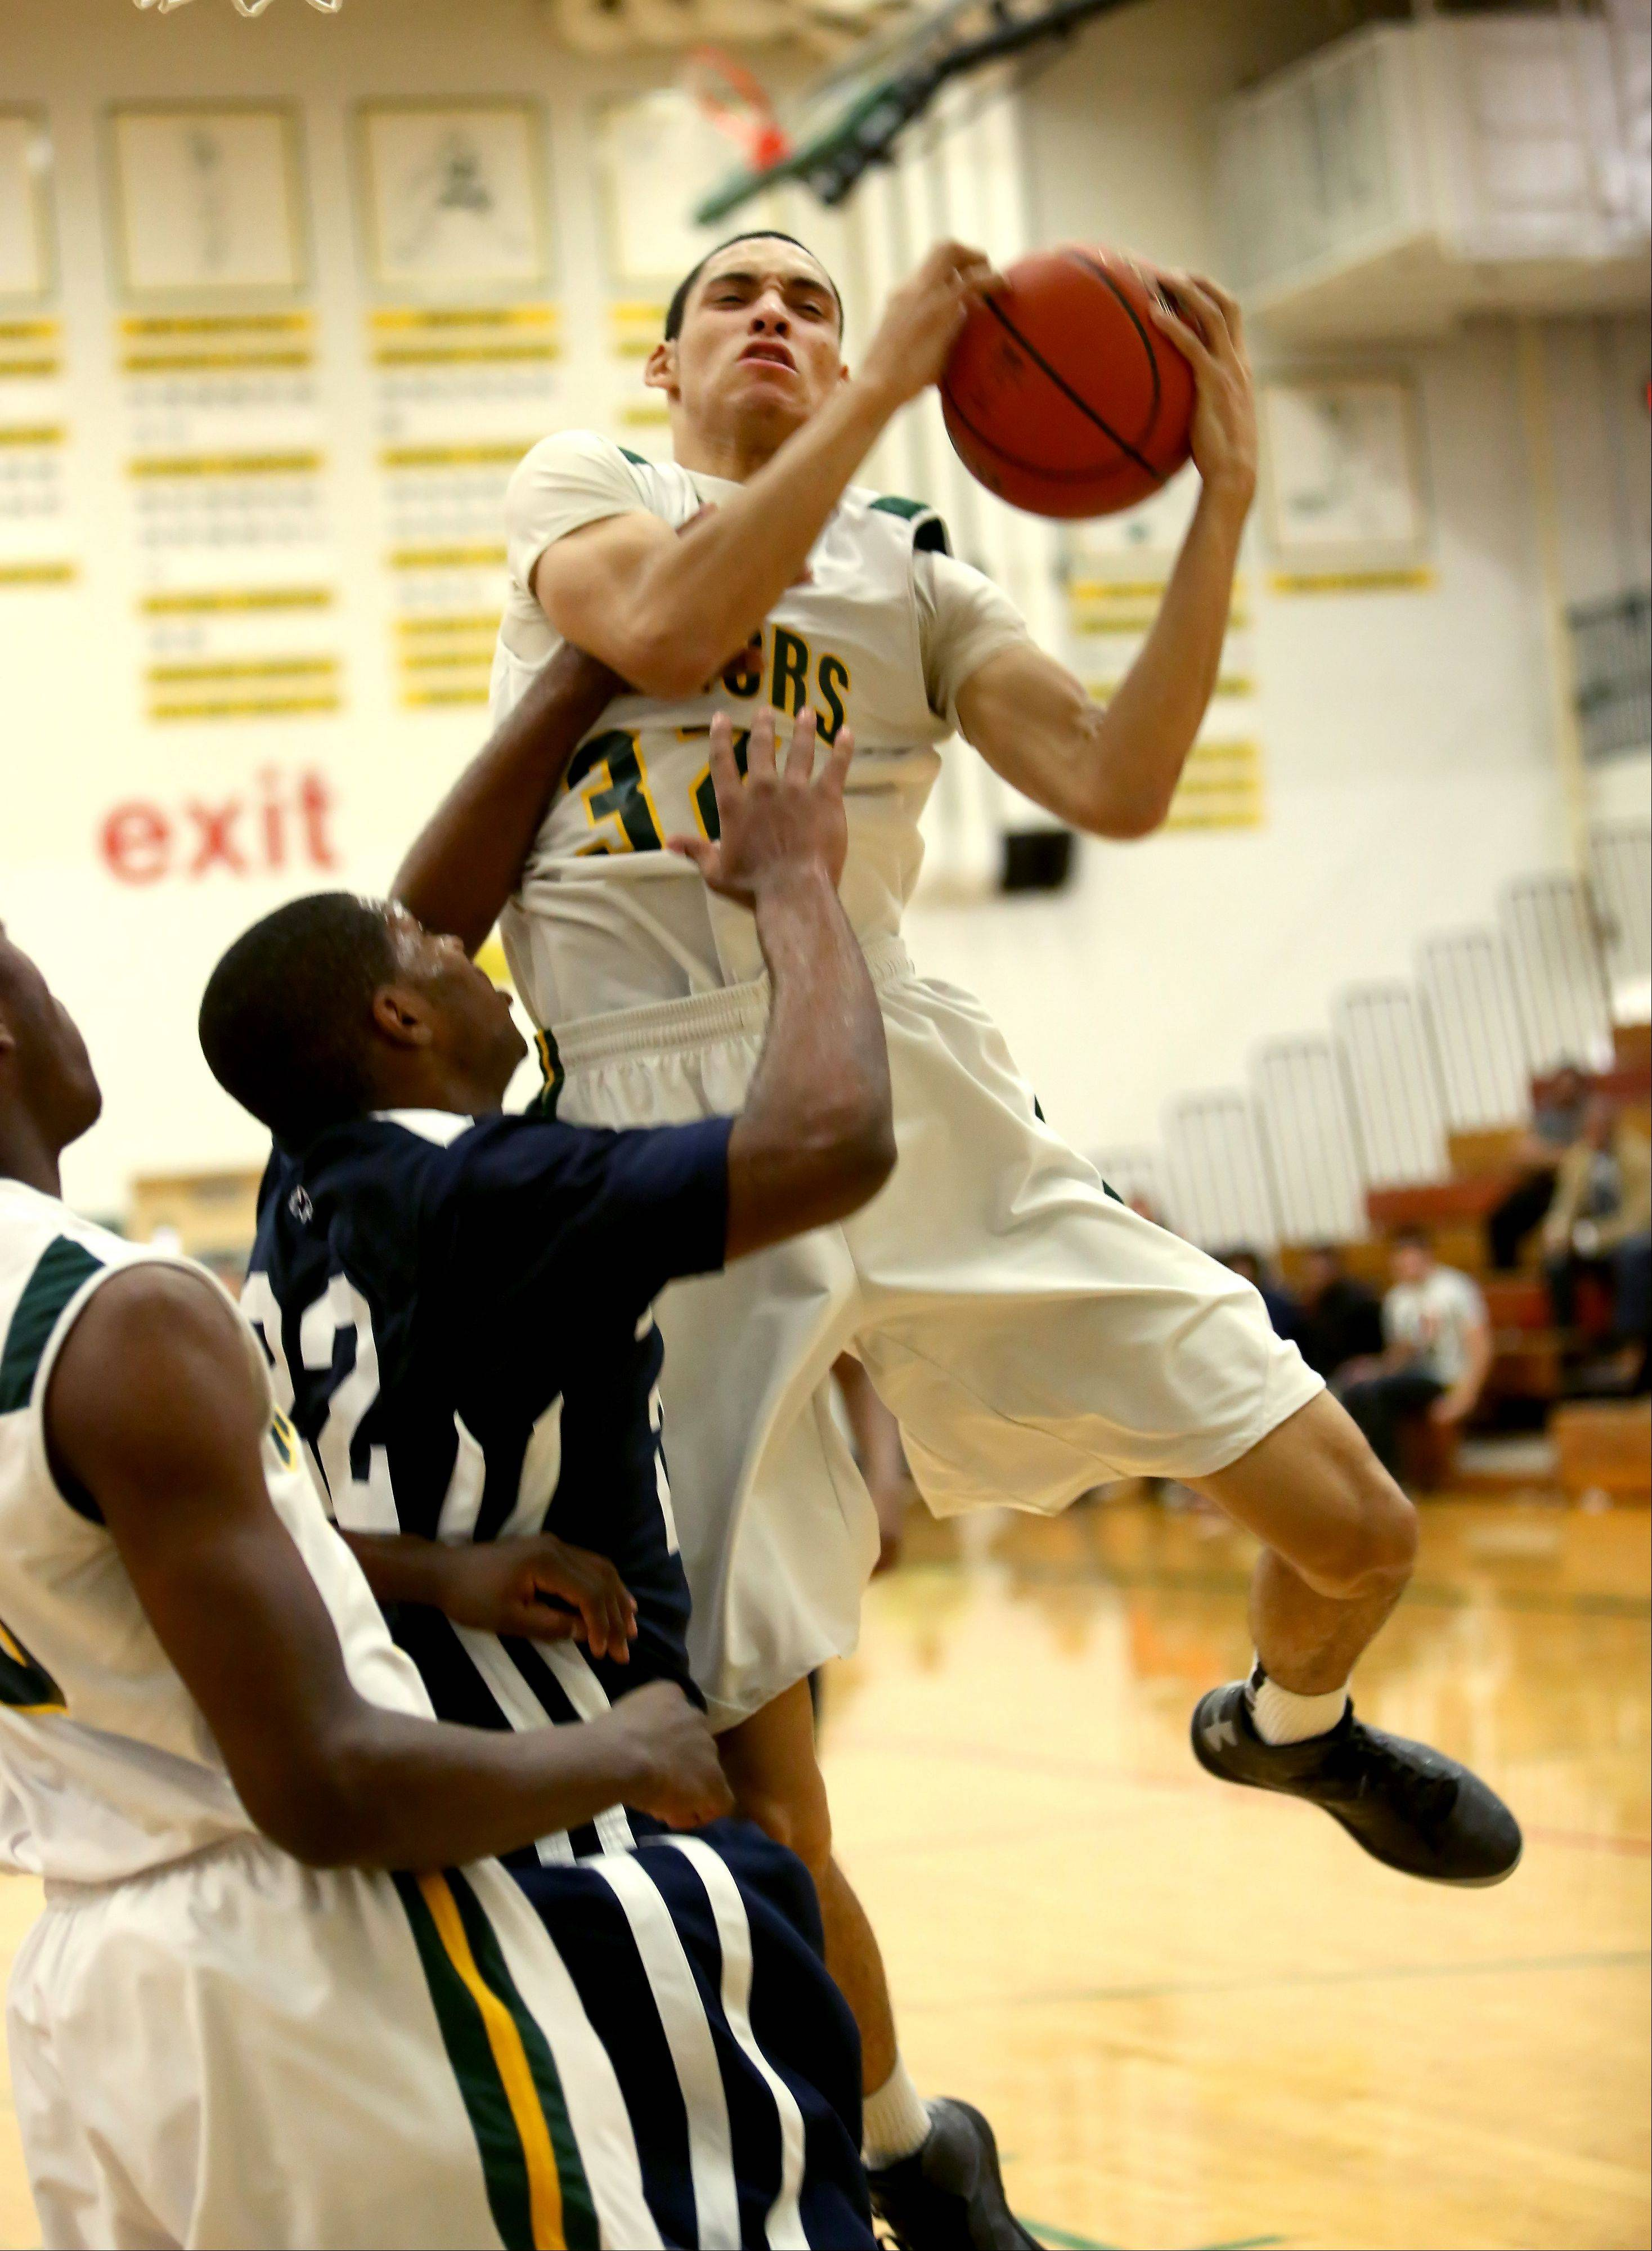 Waubonsie Valley's Bryan Jefferson goes for the rebound against Plainfield South during Tuesday's game in Aurora.